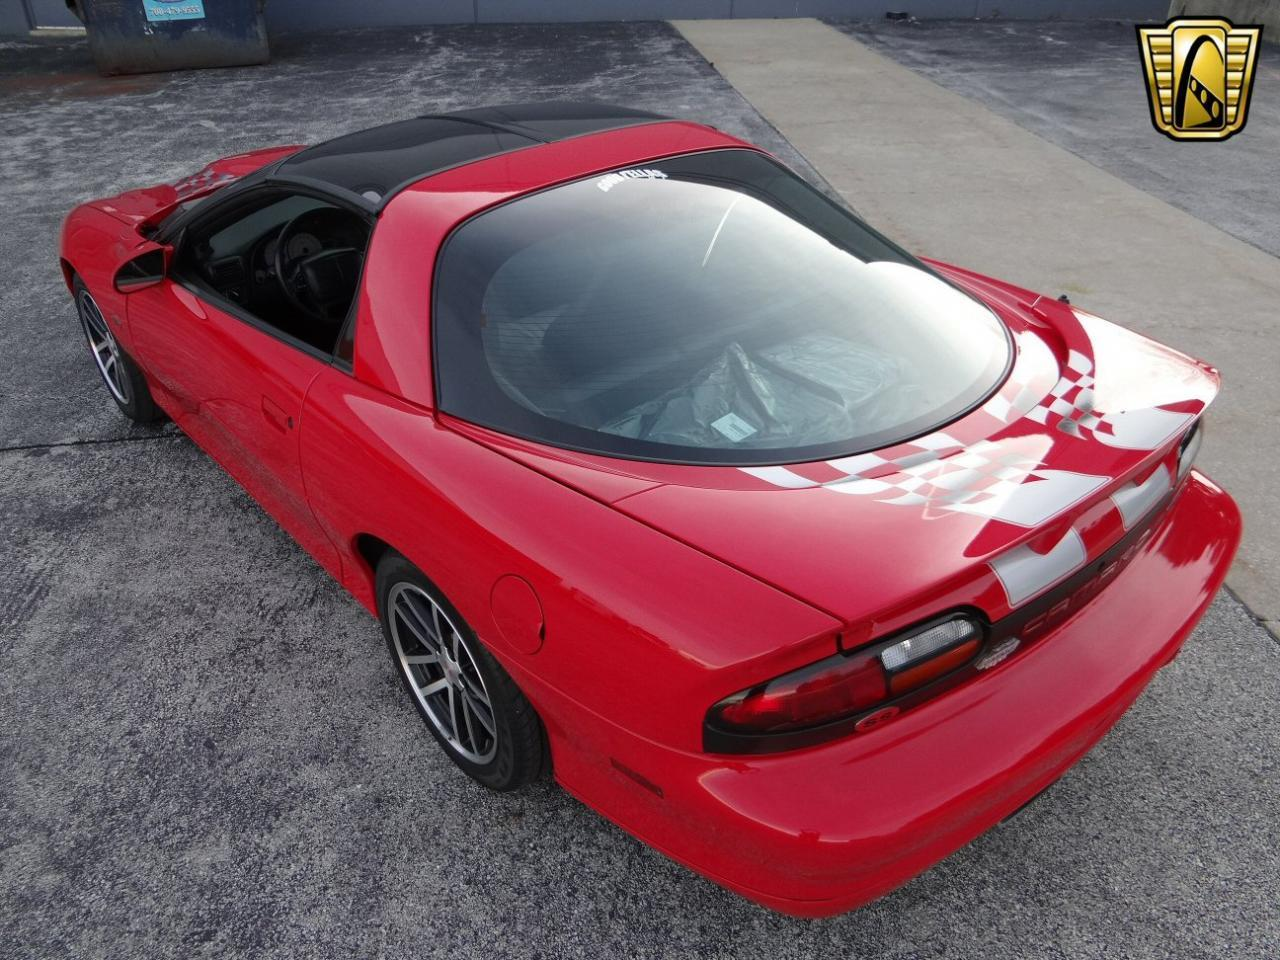 Large Picture of '02 Chevrolet Camaro - $25,995.00 Offered by Gateway Classic Cars - Chicago - L44H